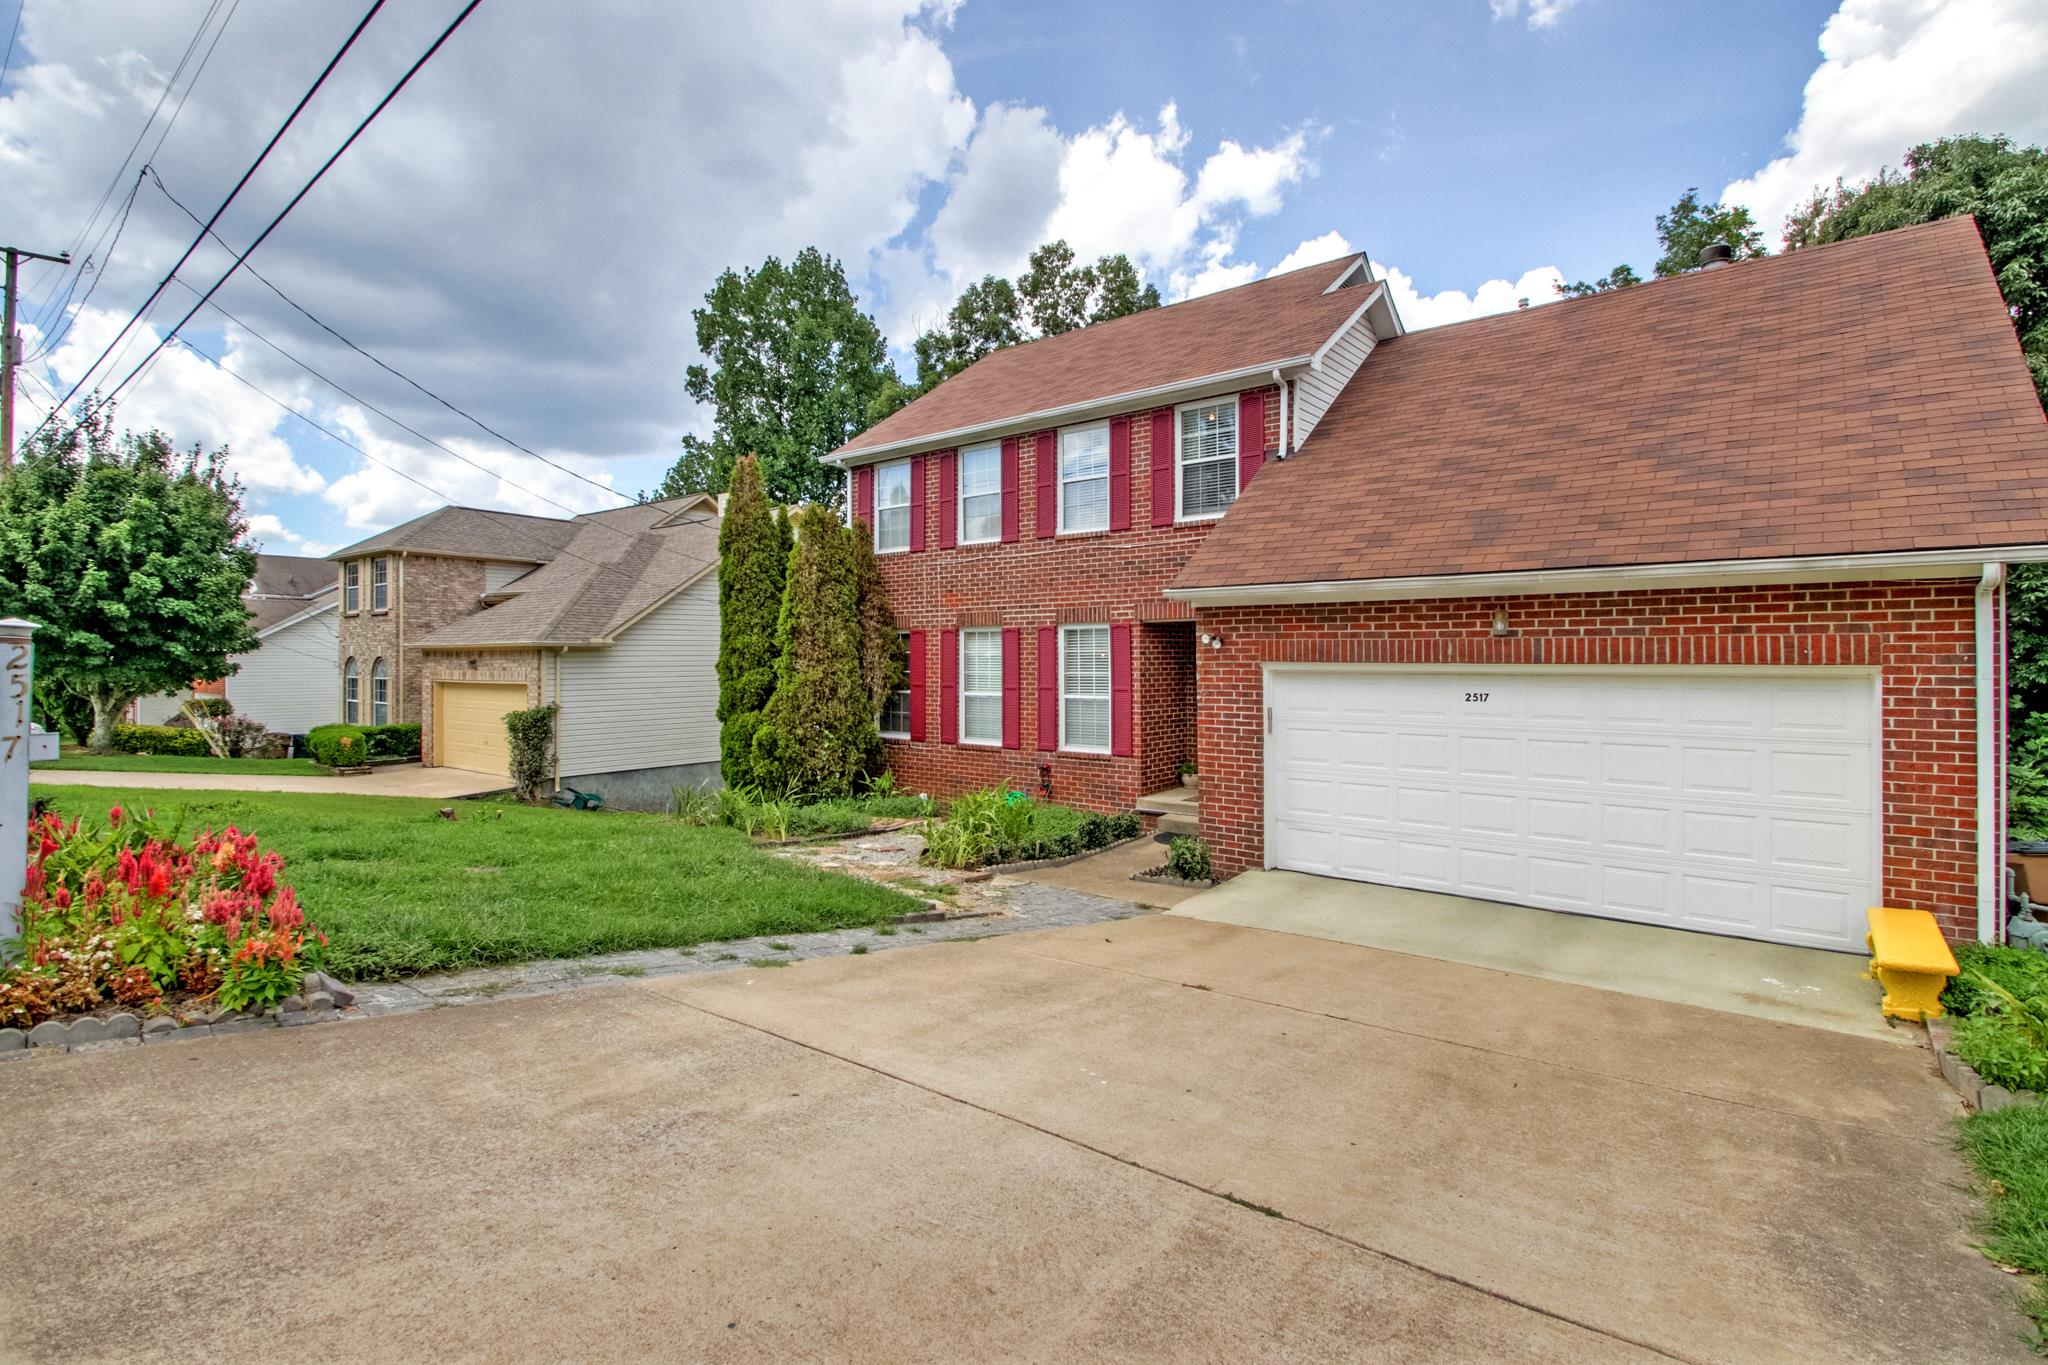 2517 Oak Forest Dr, Nashville-Antioch in Davidson County County, TN 37013 Home for Sale